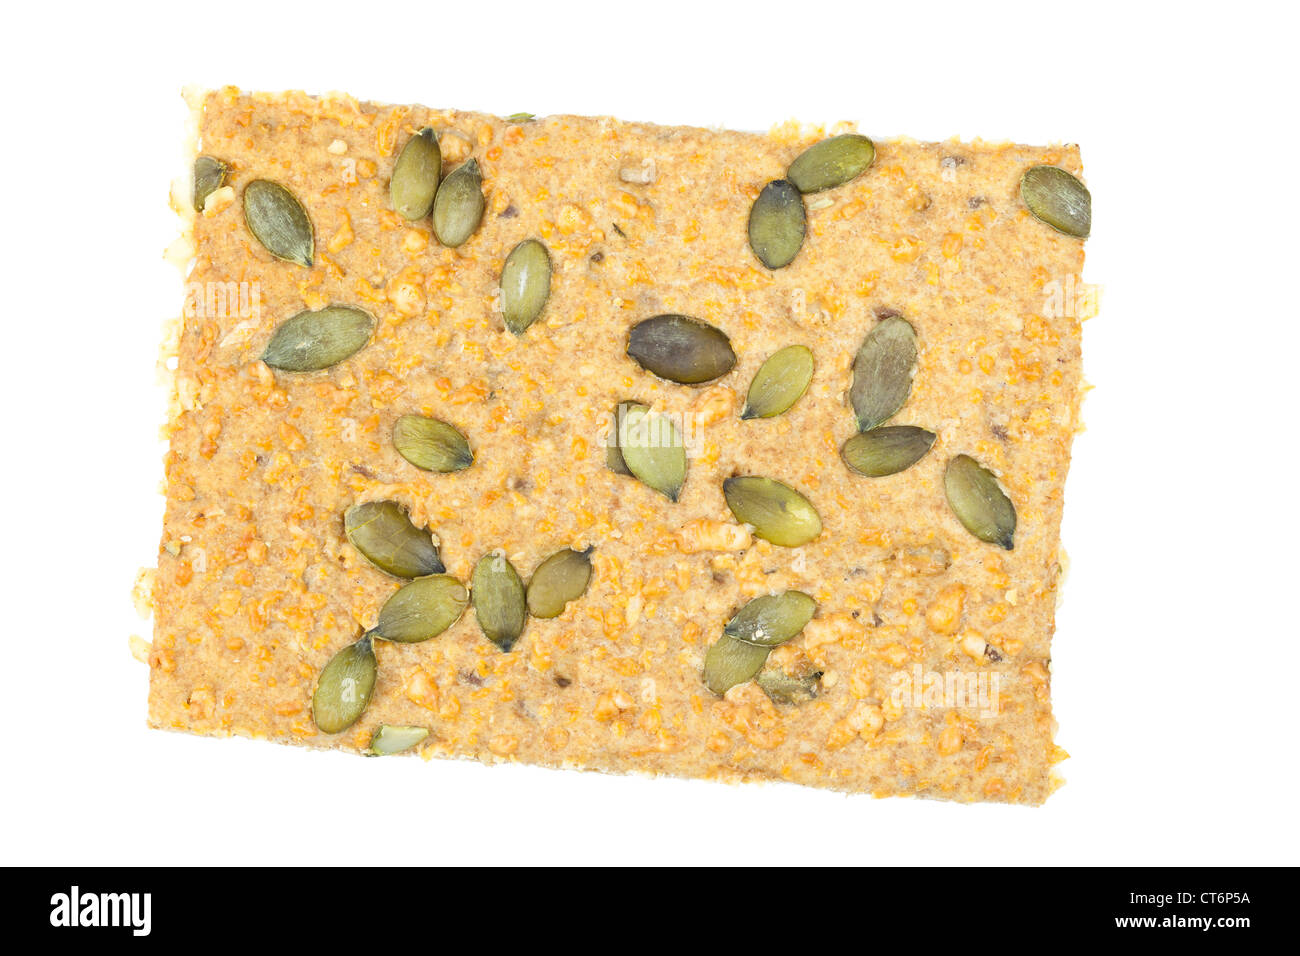 Organic wholegrain crispbread with emmental cheese and pumpkin seeds Stock Photo